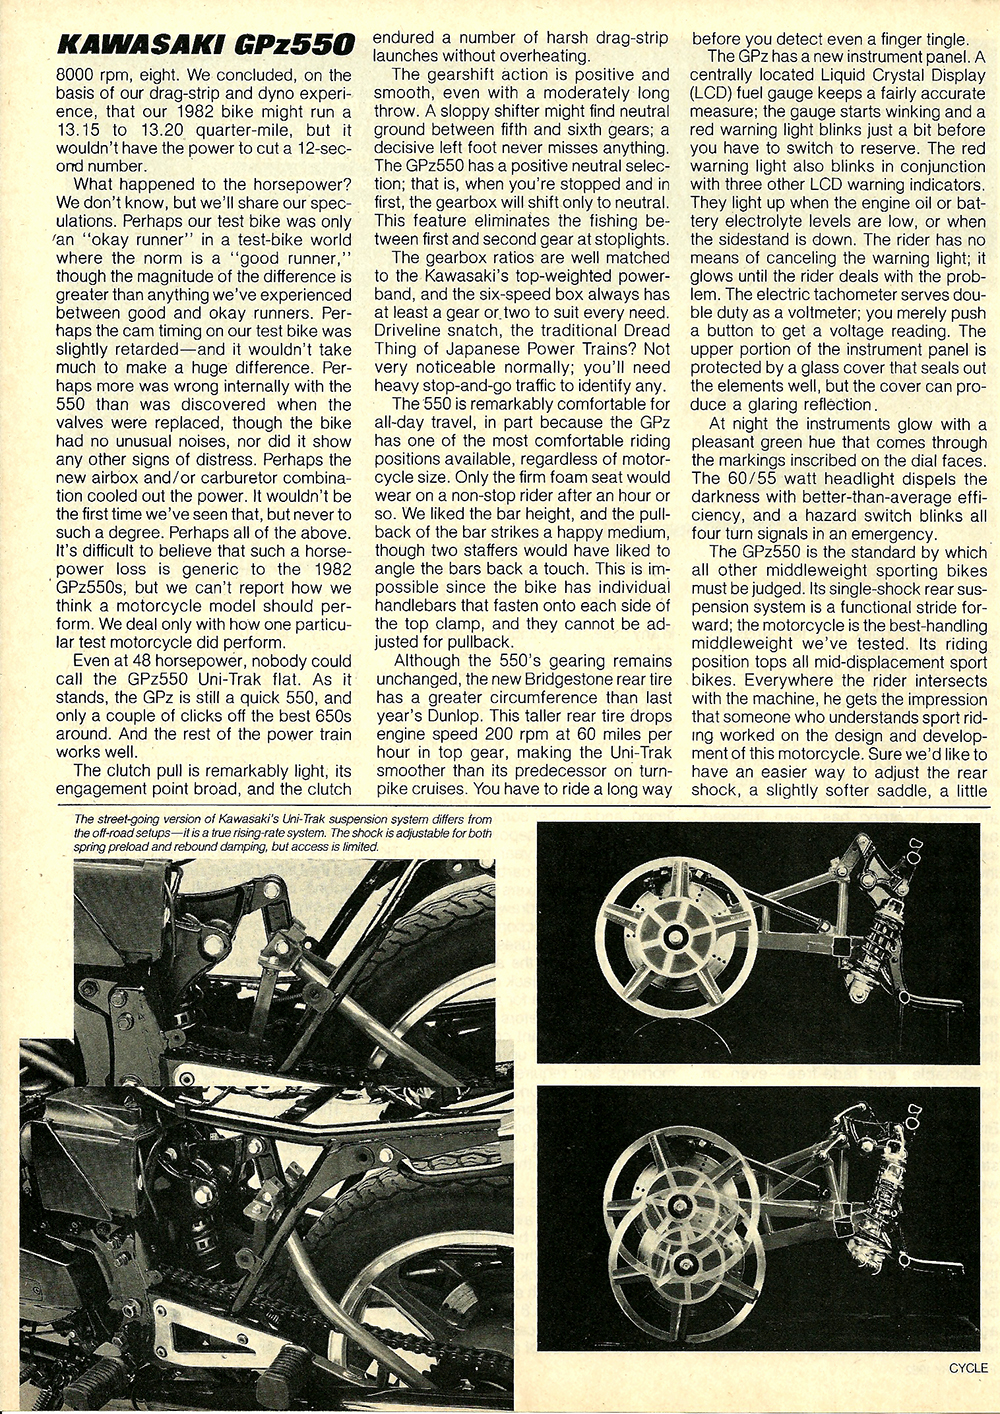 1982 Kawasaki GPz550 road test 07.jpg